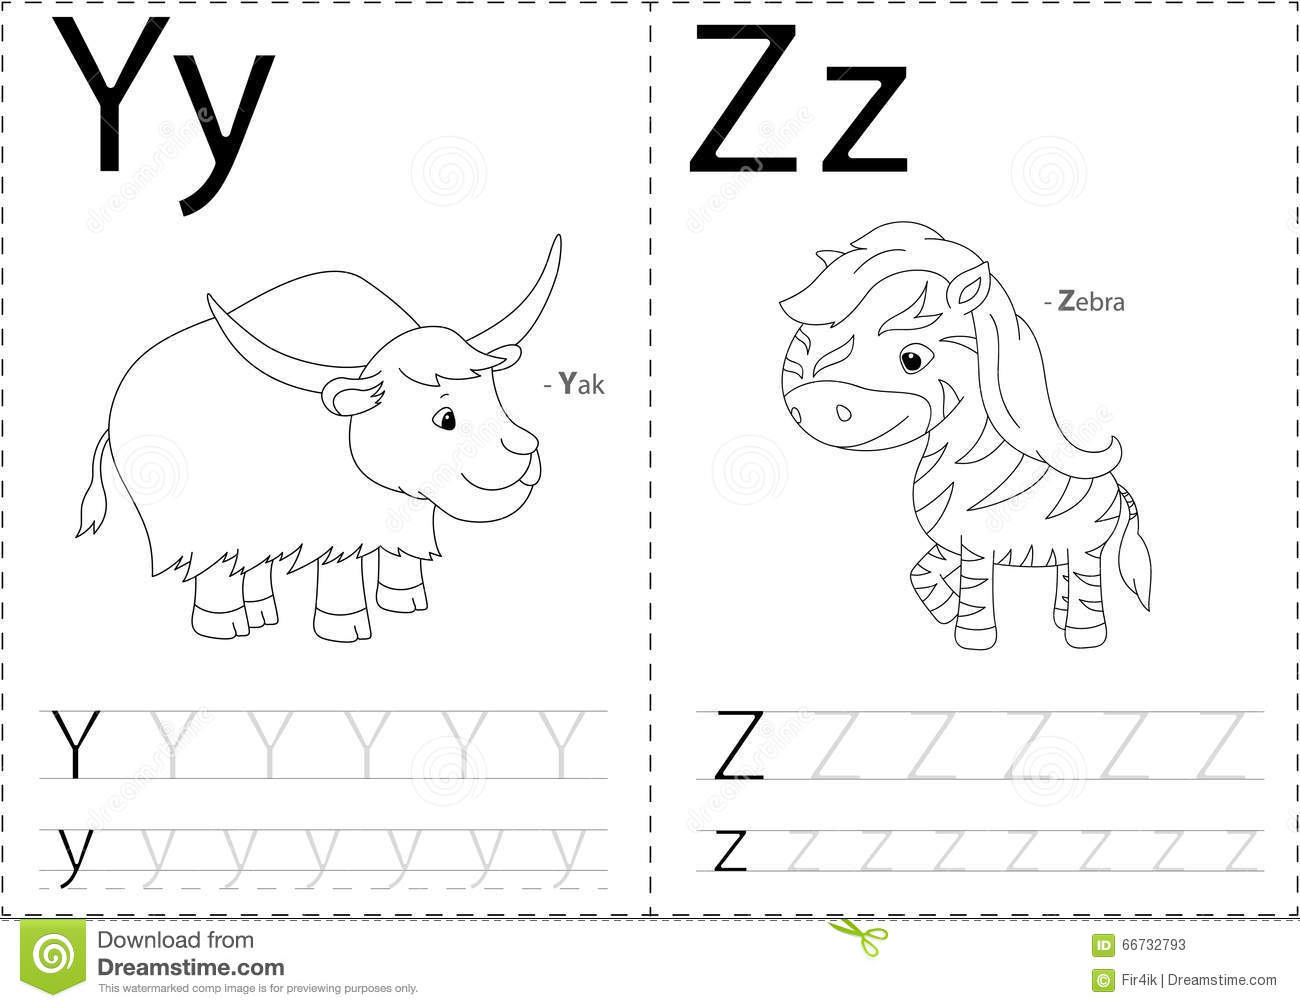 Cartoon Yak And Zebra Alphabet Tracing Worksheet Writing AZ A – Alphabet Trace Worksheet